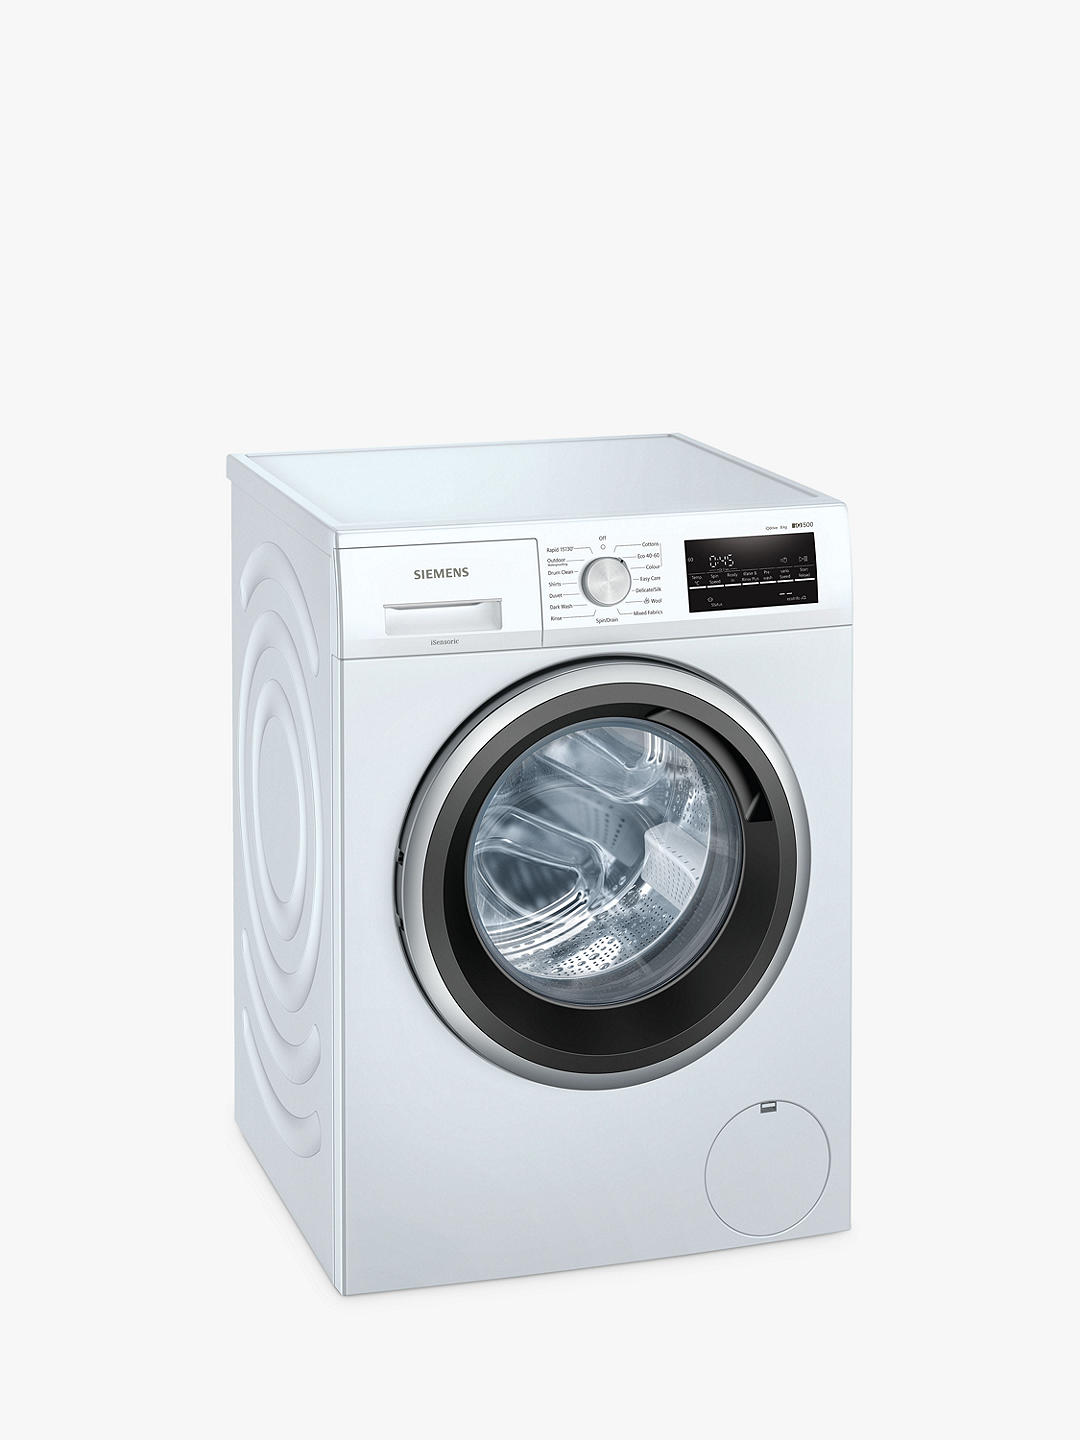 Buy Siemens iQ500 WM14UT89GB Freestanding Washing Machine, 8kg Load, 1400rpm Spin, White Online at johnlewis.com